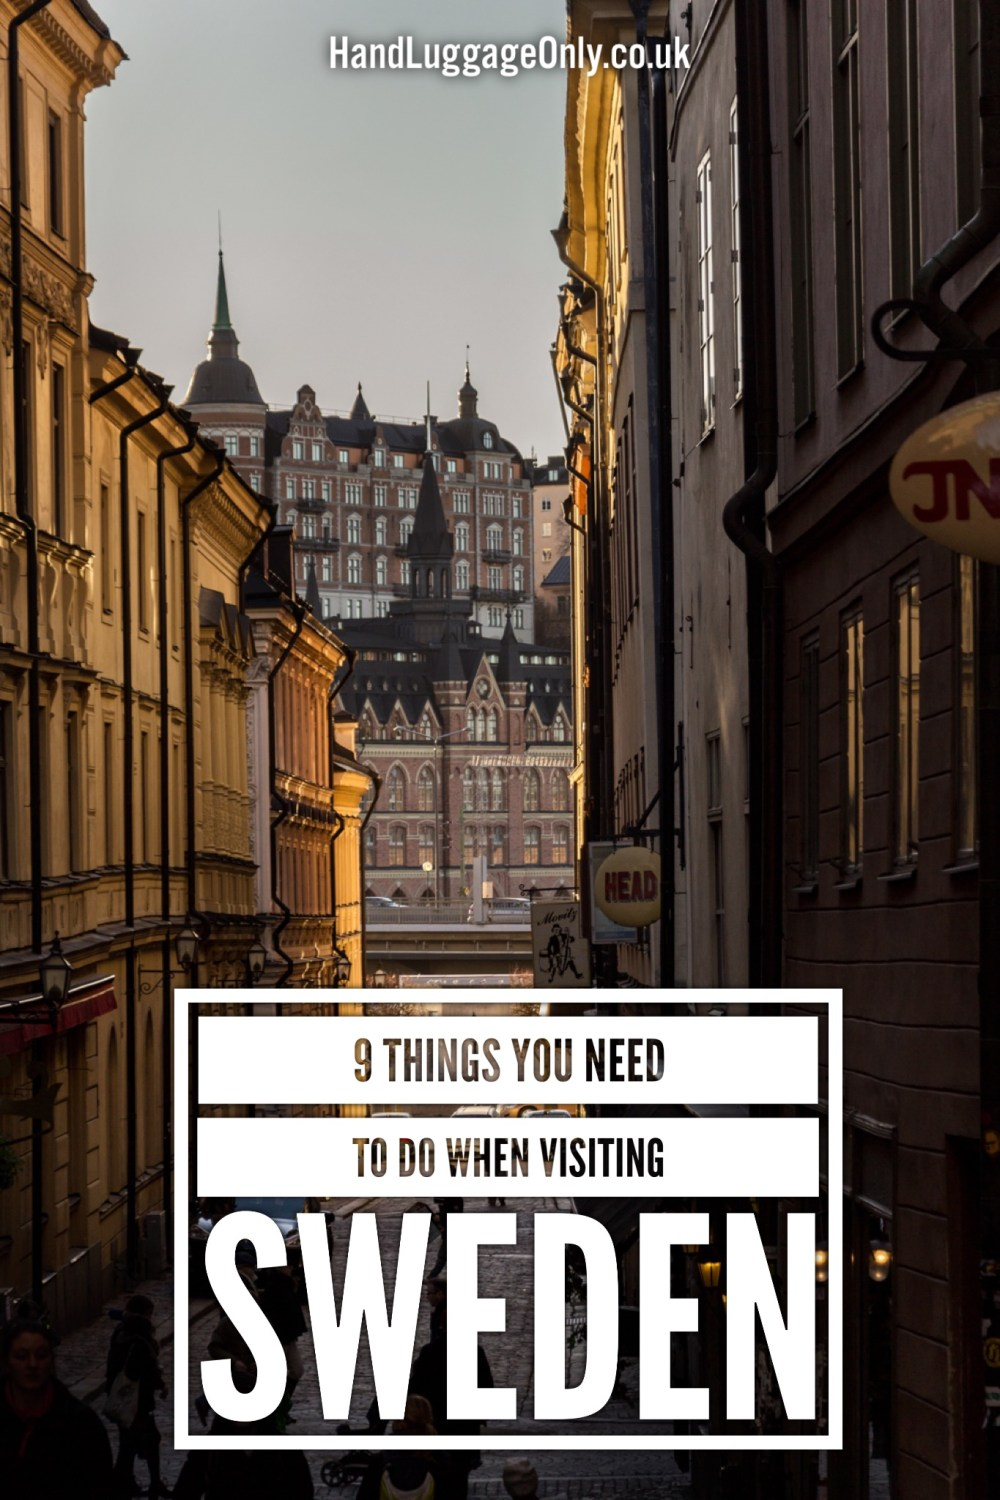 9 Things You Need To See When Visiting Sweden